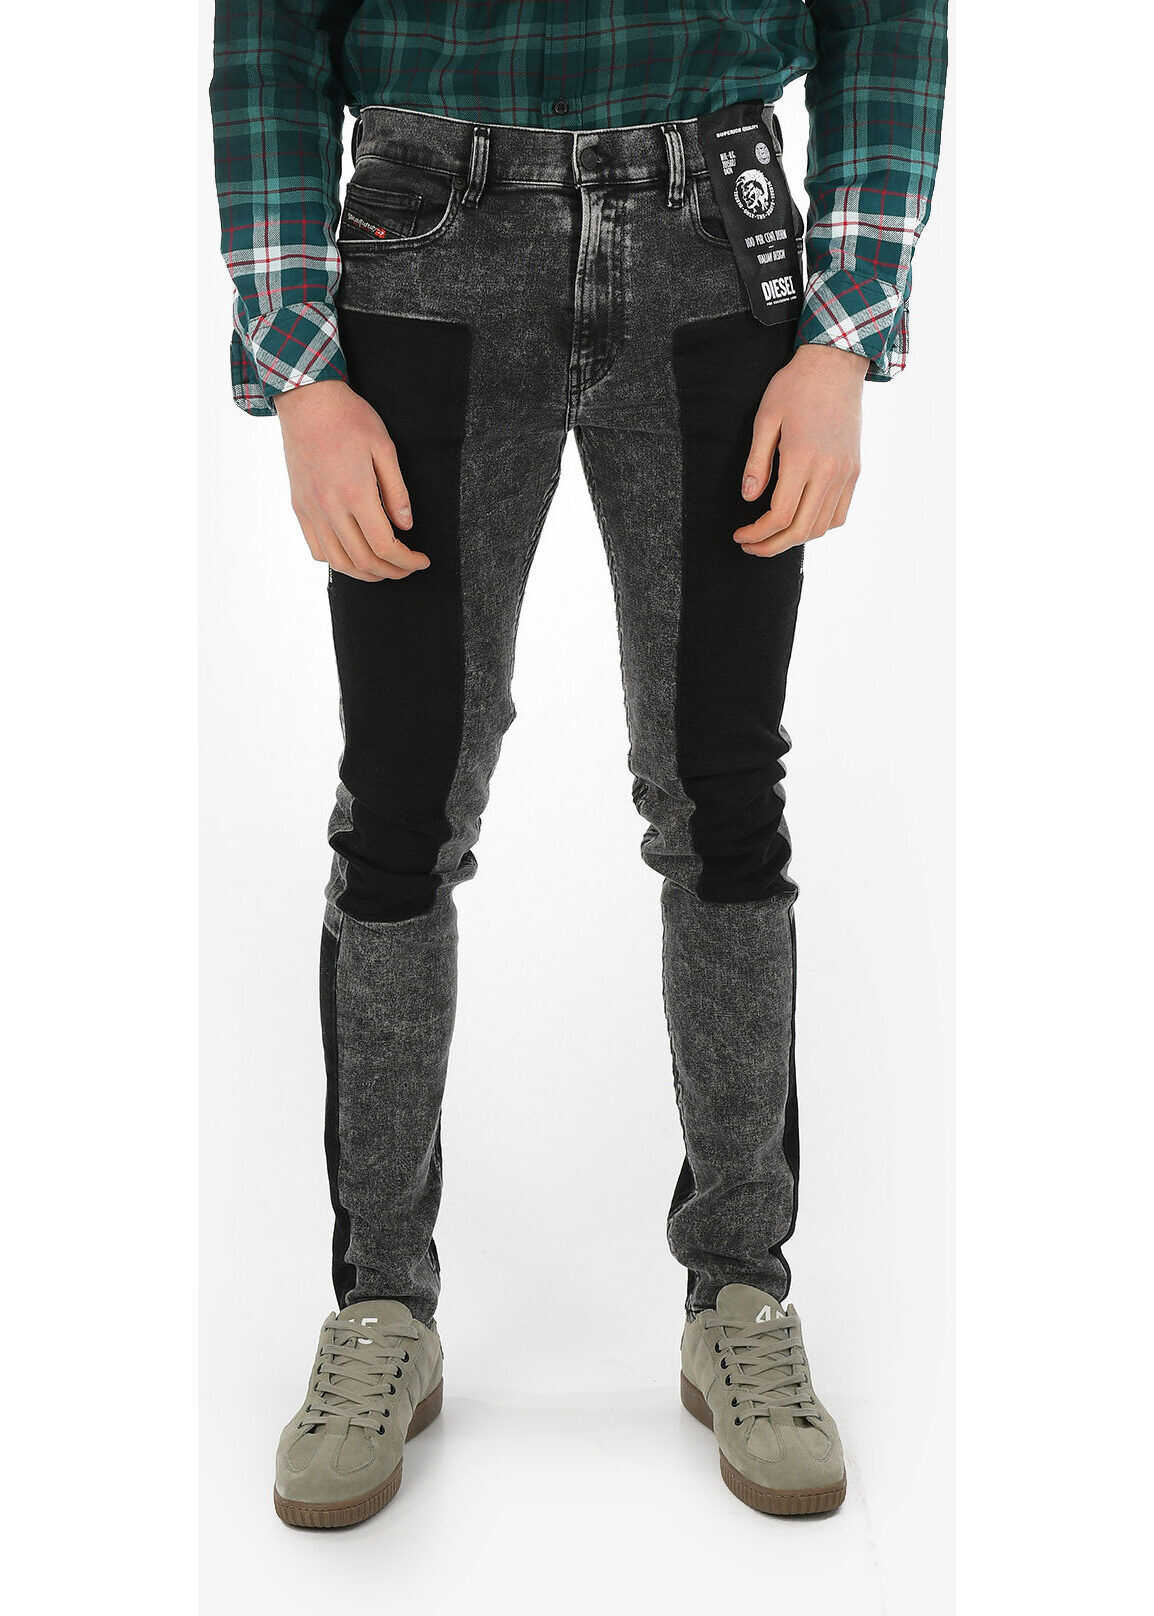 Diesel 14cm Skinny Fit D-AMNY-BK-SP Jeans L34 GRAY imagine